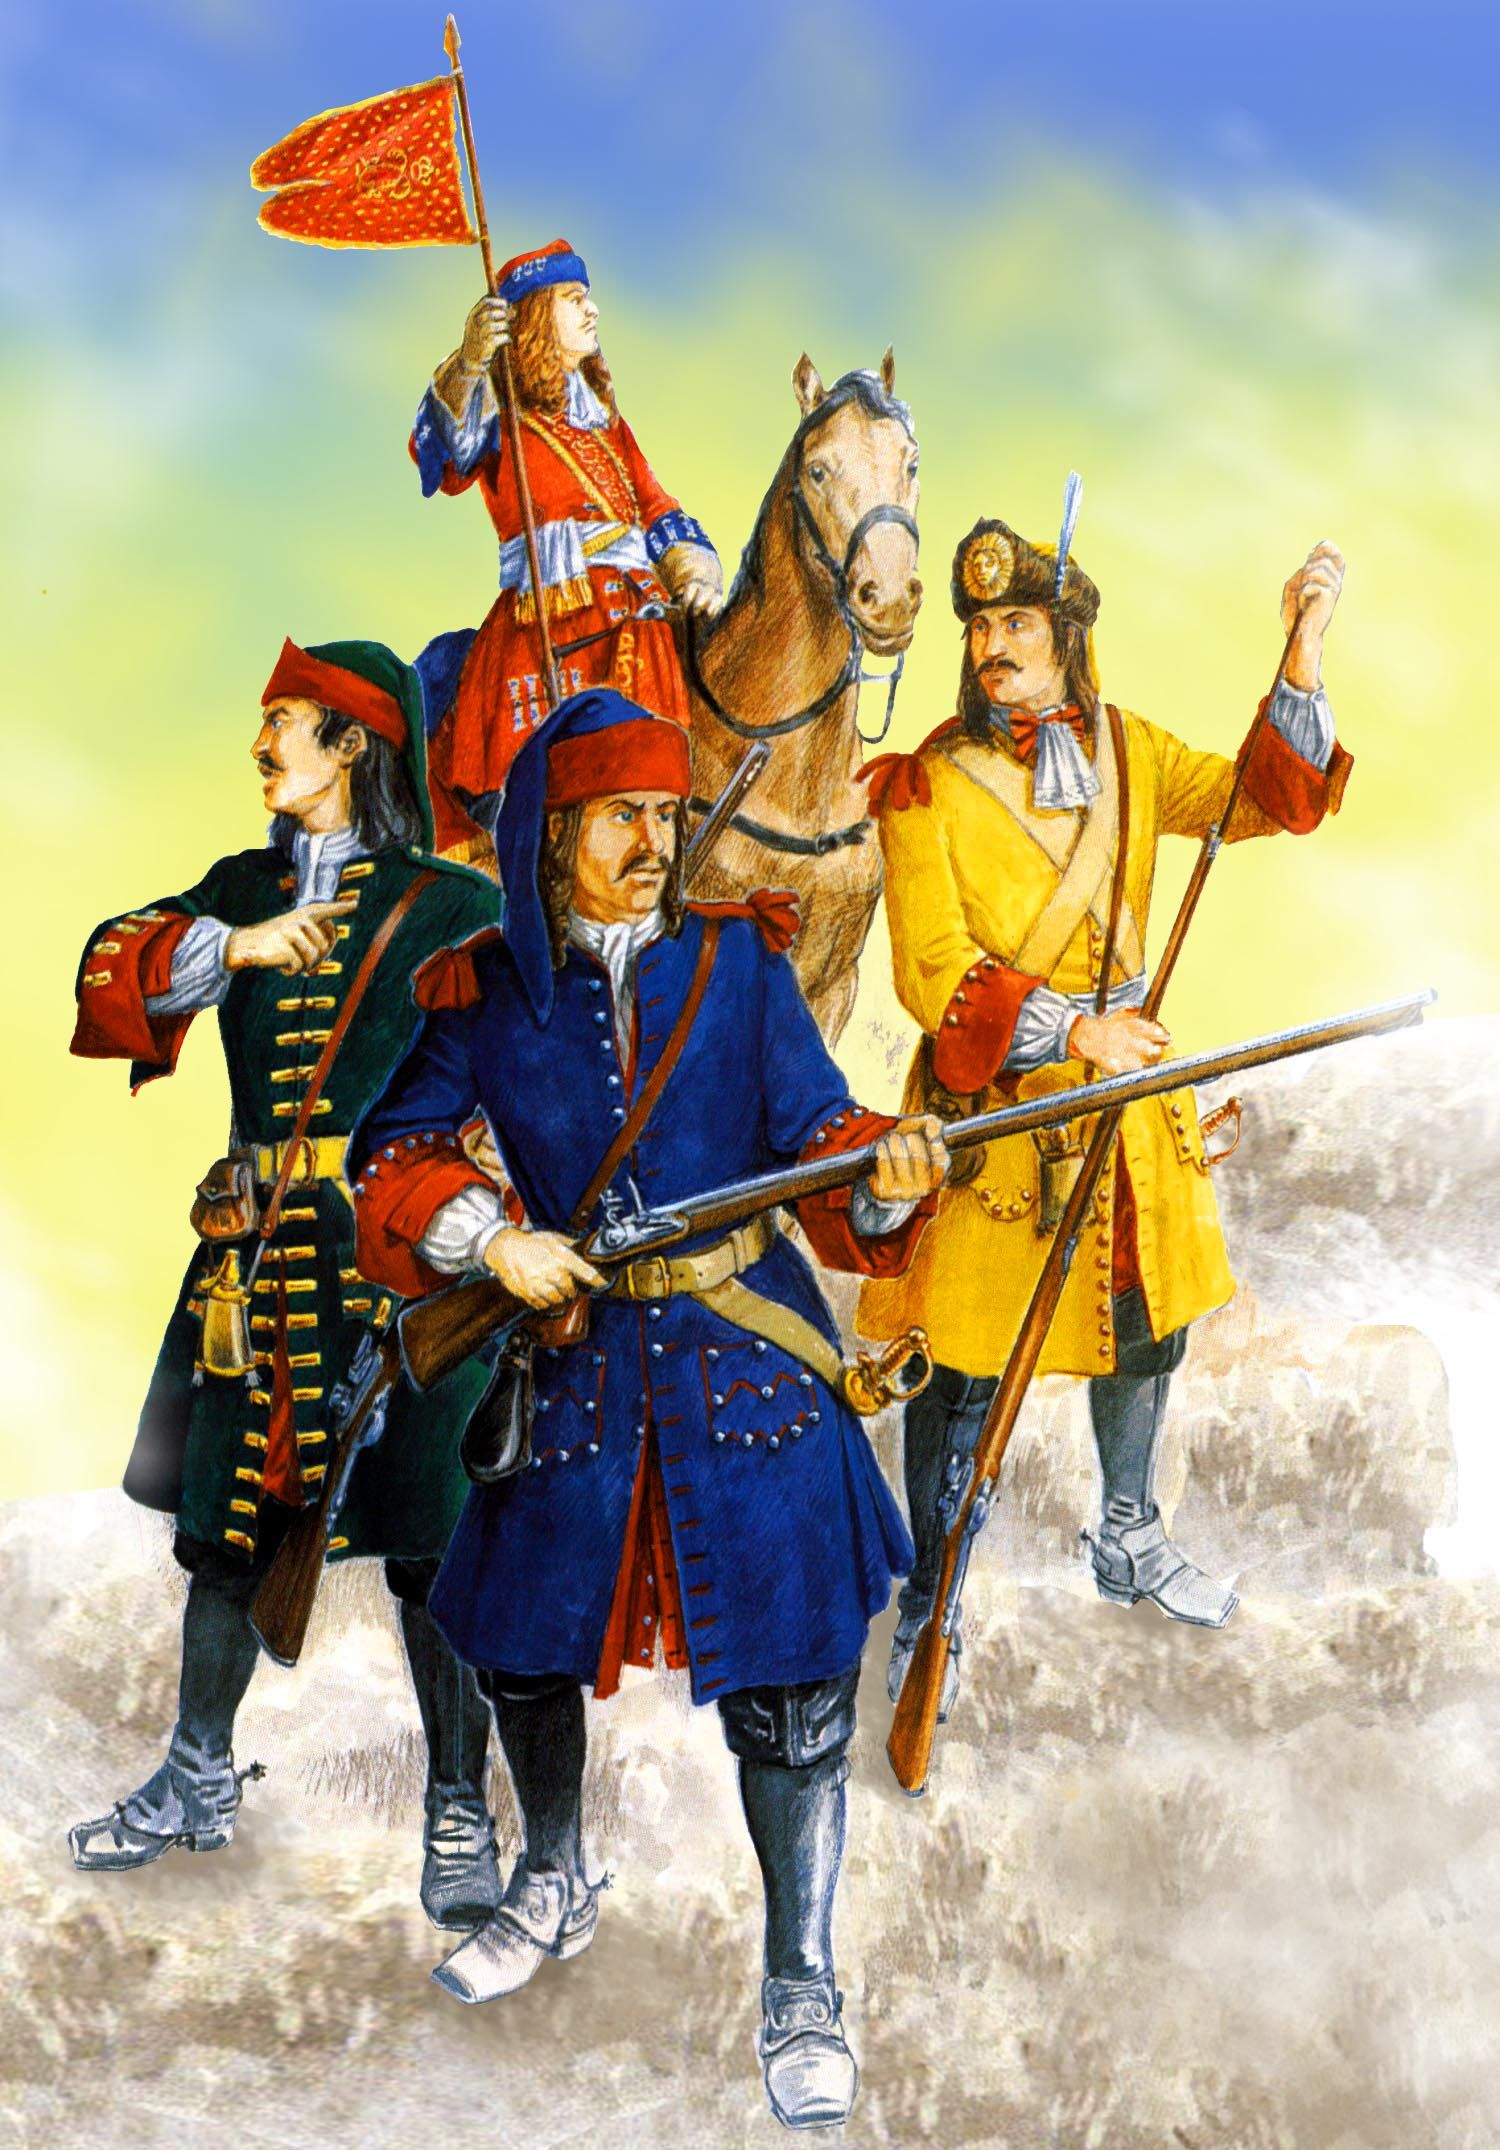 The Royal French King's Dragoon regiment of King Louis XIV ...